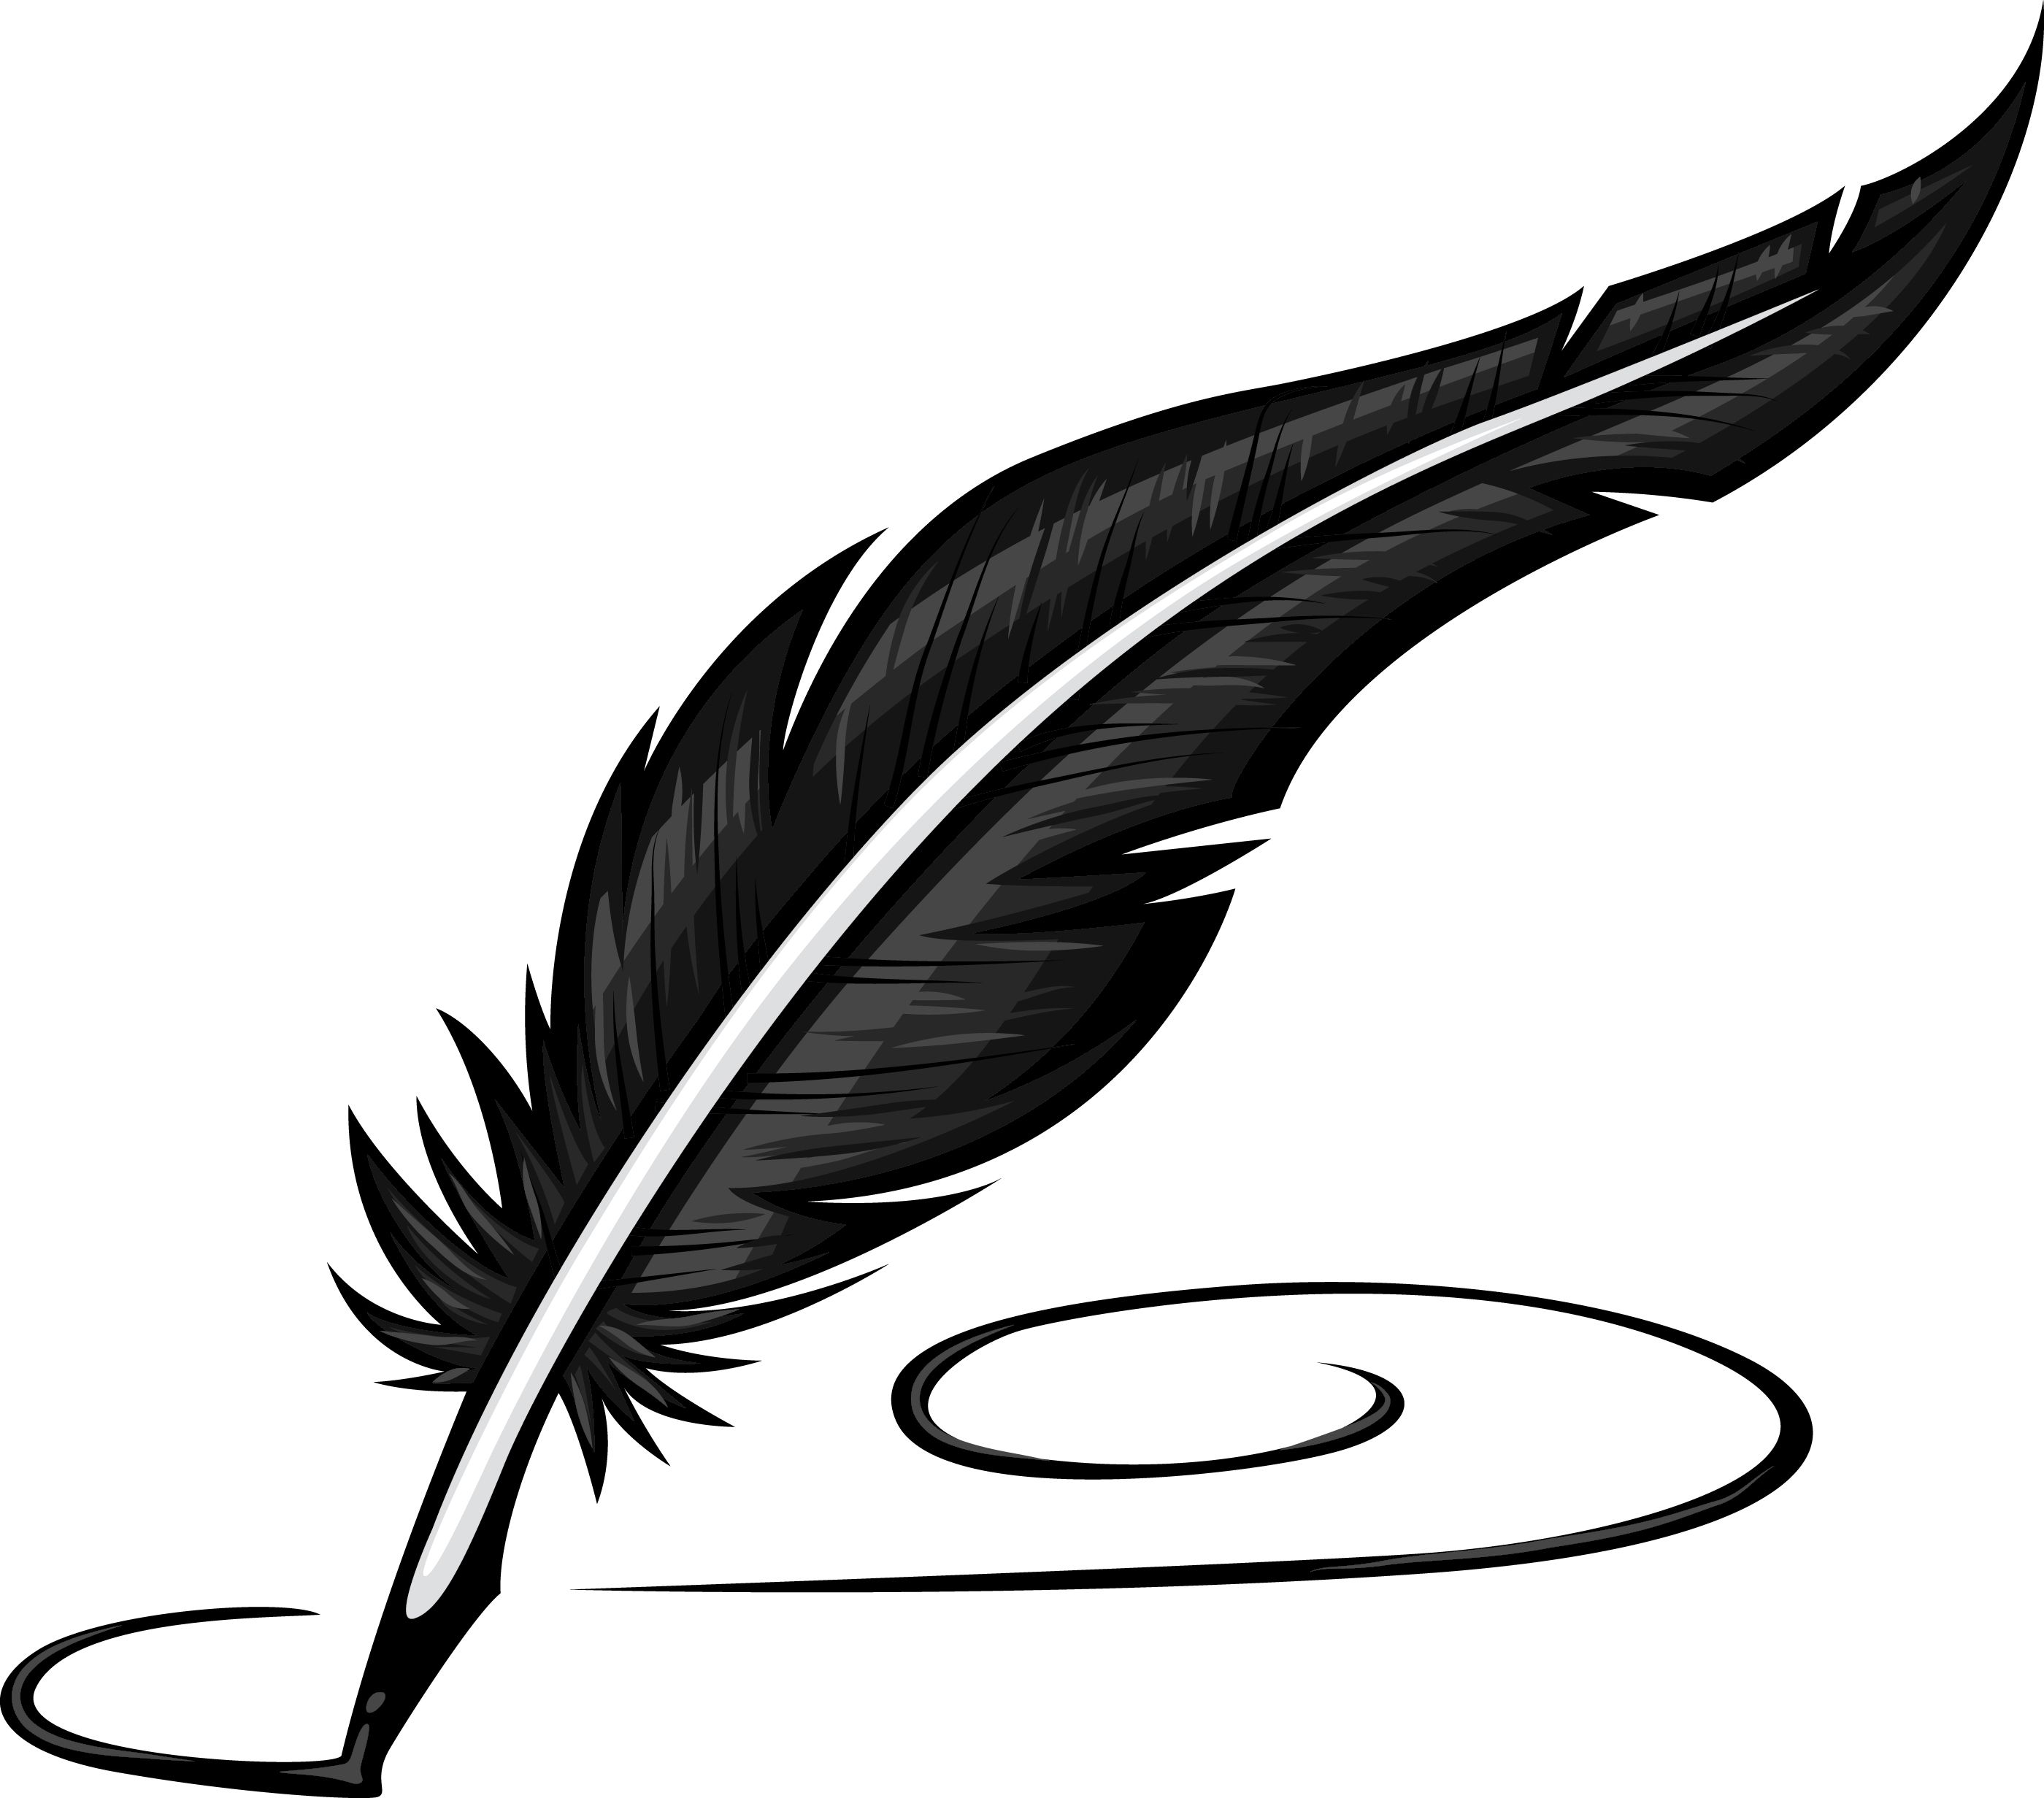 Quill clipart black and white 6 » Clipart Station.